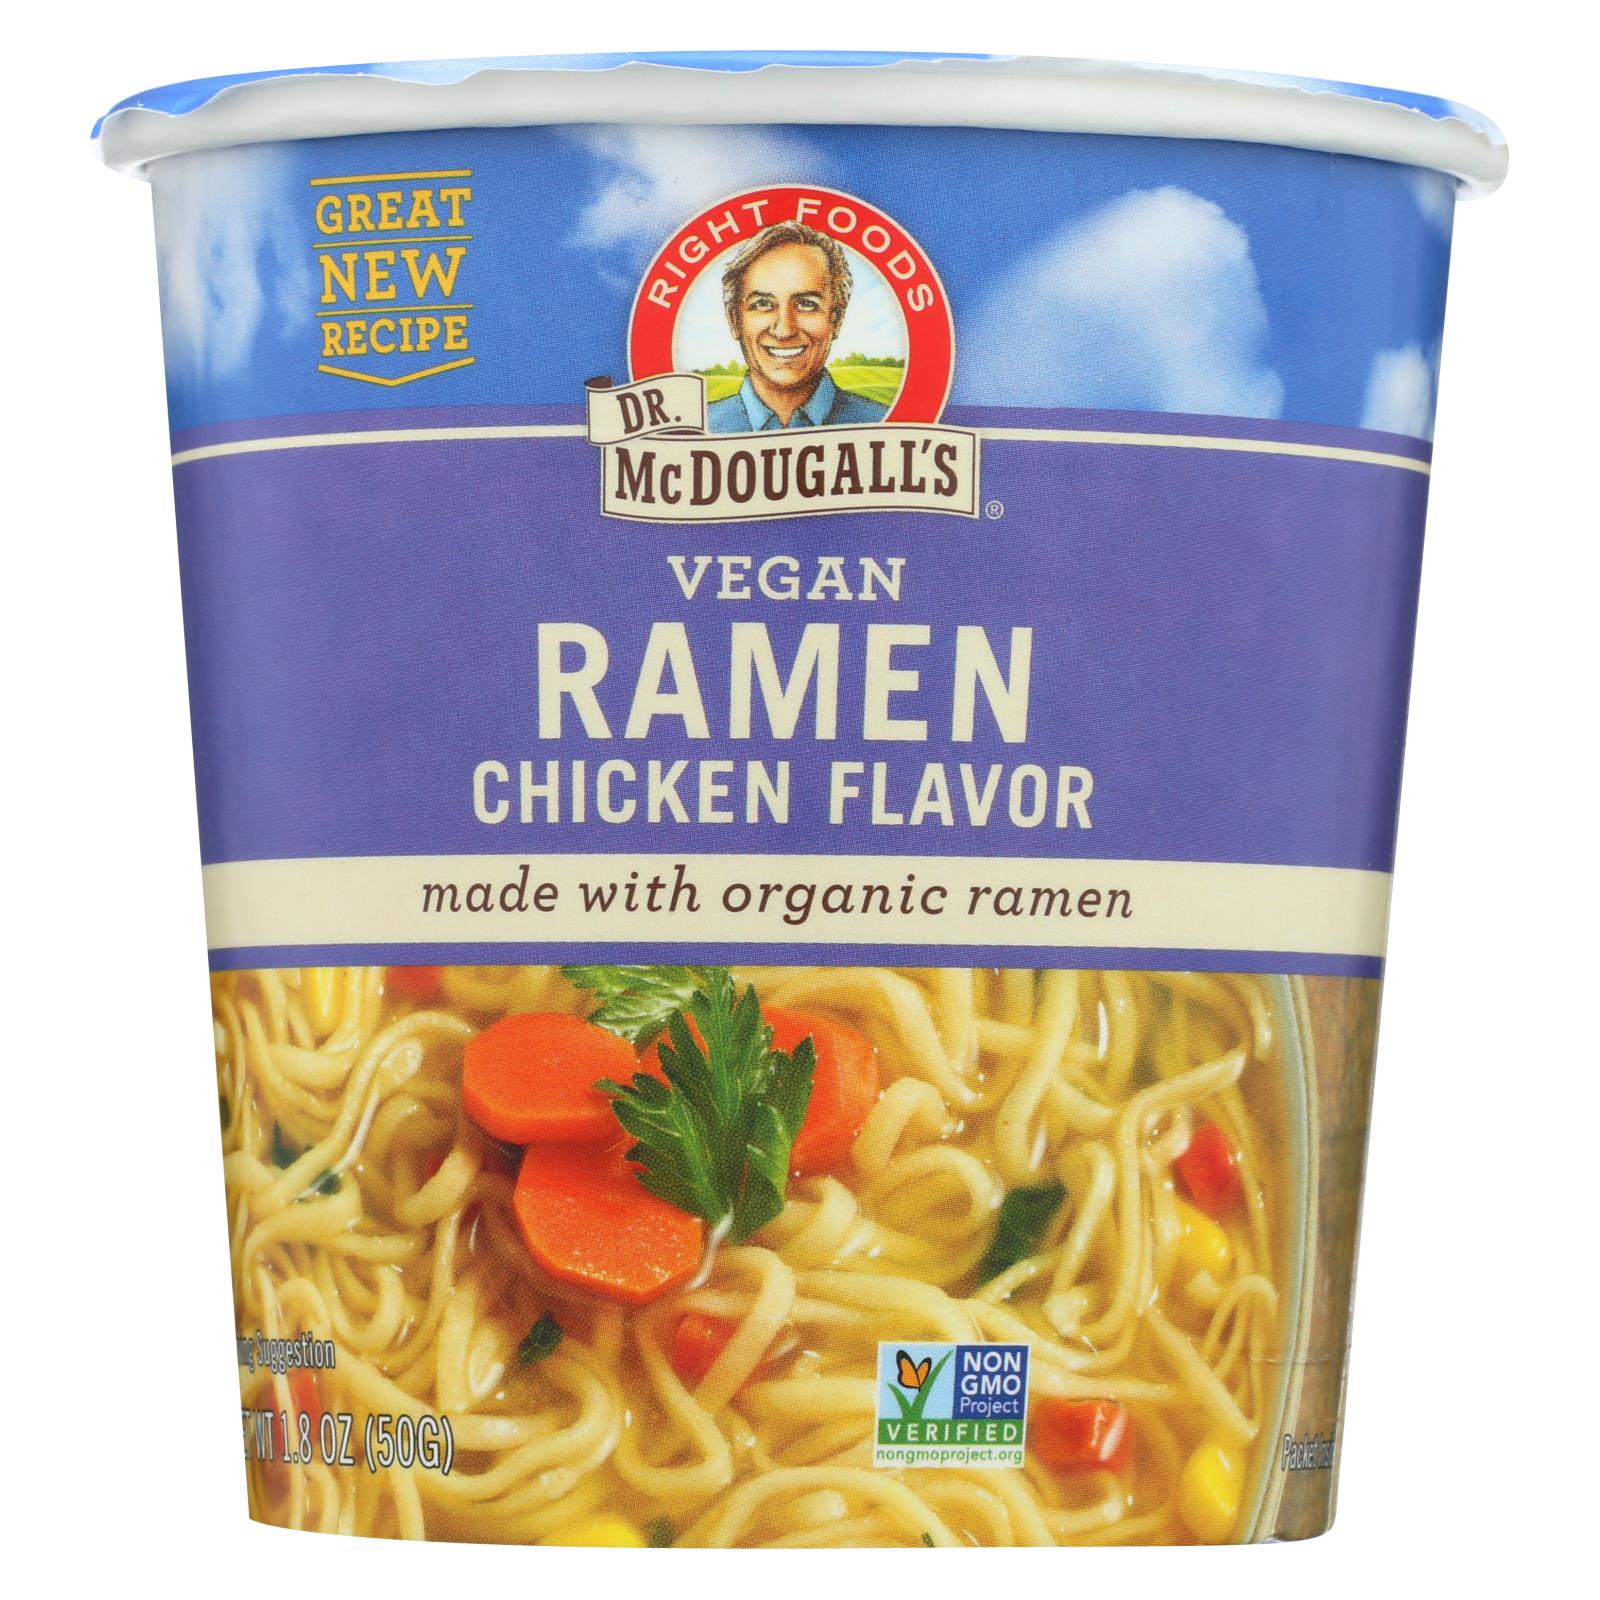 Dr. Mcdougall's Vegan Ramen Soup Big Cup With Noodles - Chicken - Case Of 6 - 1.8 Oz. HG1012244